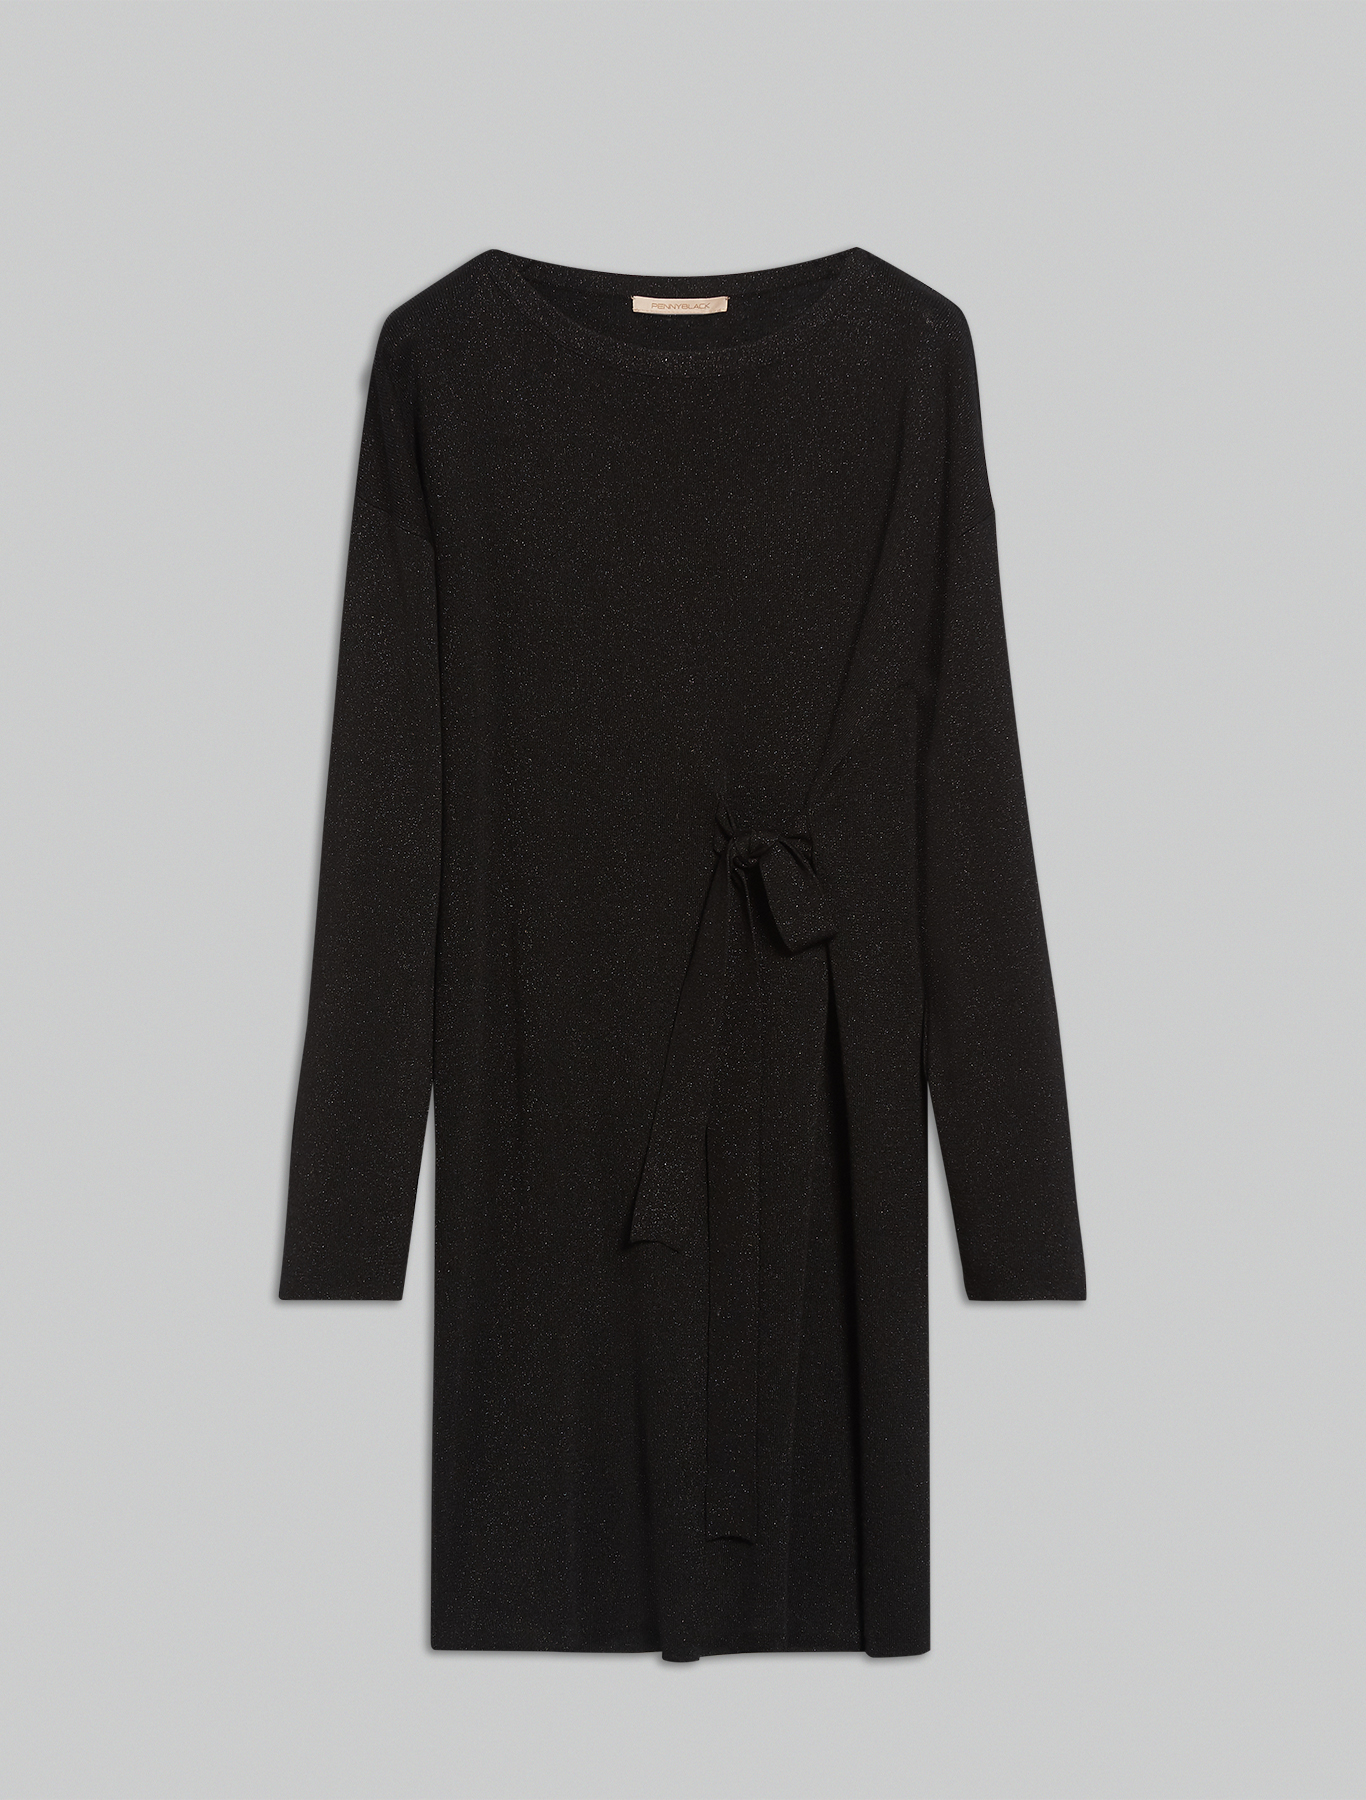 Lamé knit dress - black - pennyblack